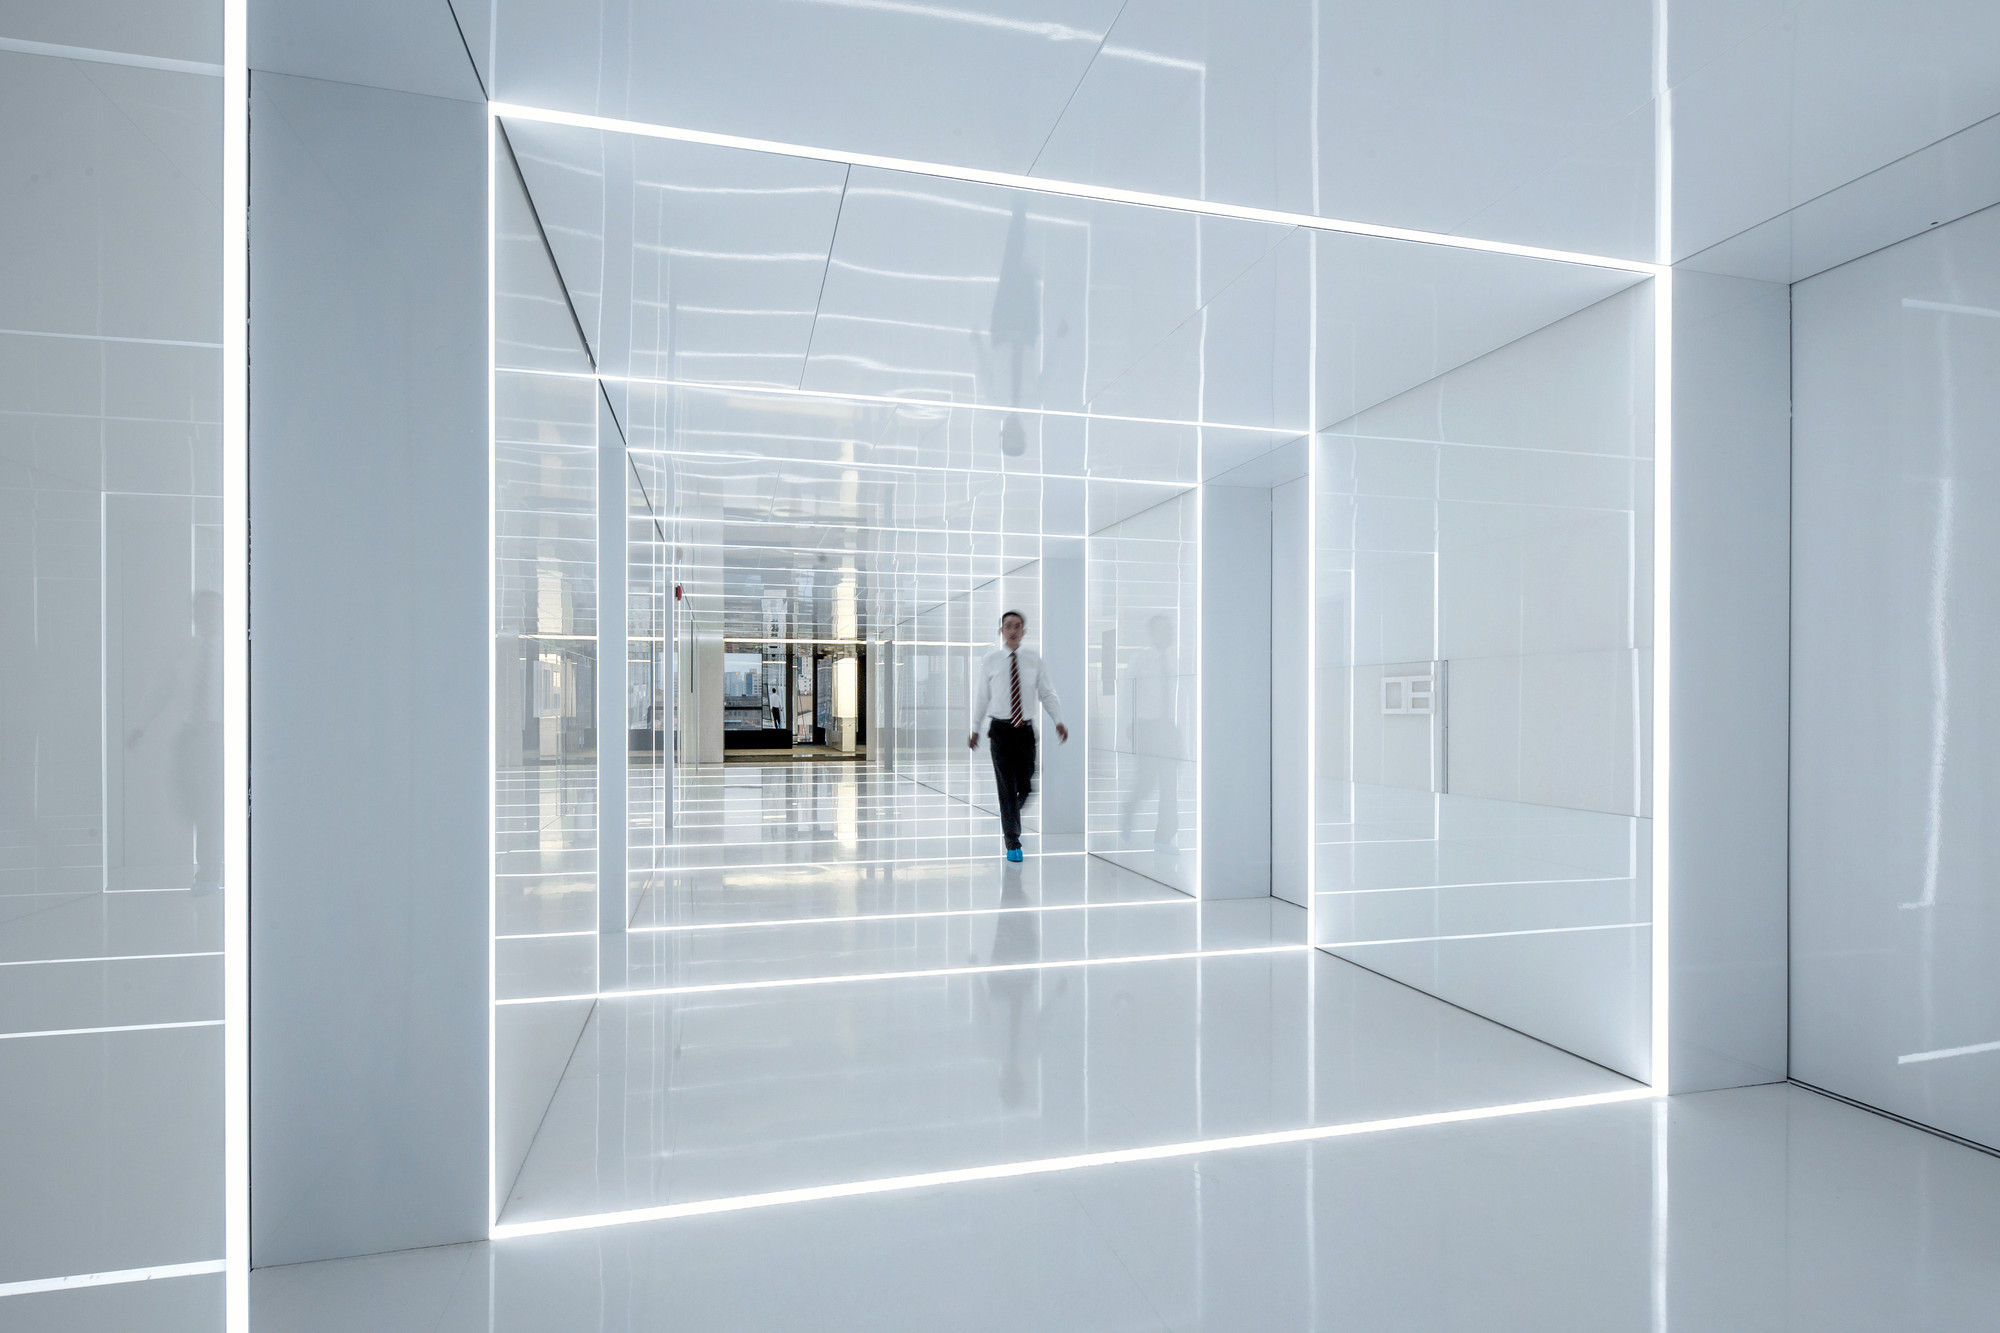 Glass office soho china aim architecture archdaily Opening glass walls